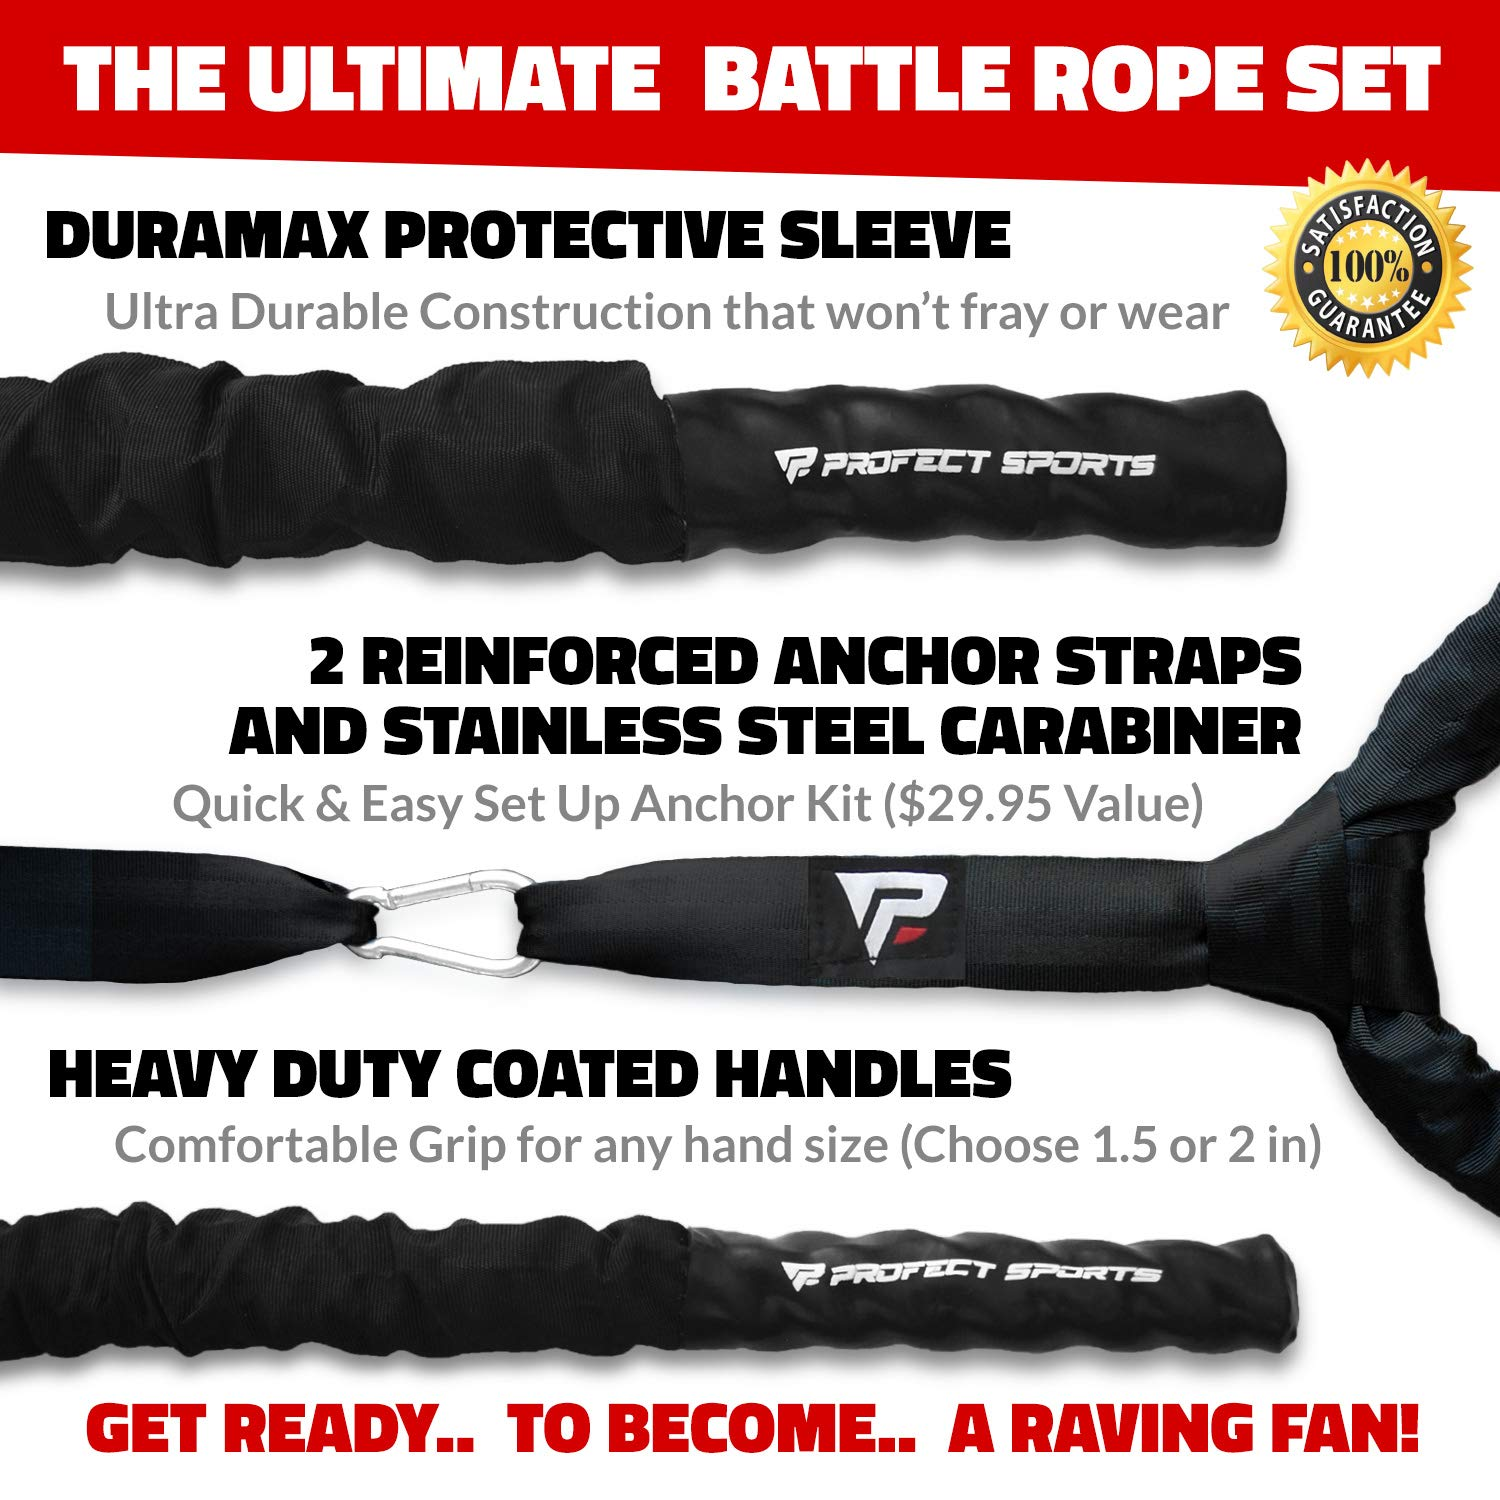 Pro Battle Ropes with Anchor Strap Kit - Upgraded Durable Protective Sleeve - 100% Poly Dacron Heavy Battle Rope for Strength Training, Cardio Workout, Crossfit, Fitness Exercise Rope (1.5'' x 30 ft) by Profect Sports (Image #2)